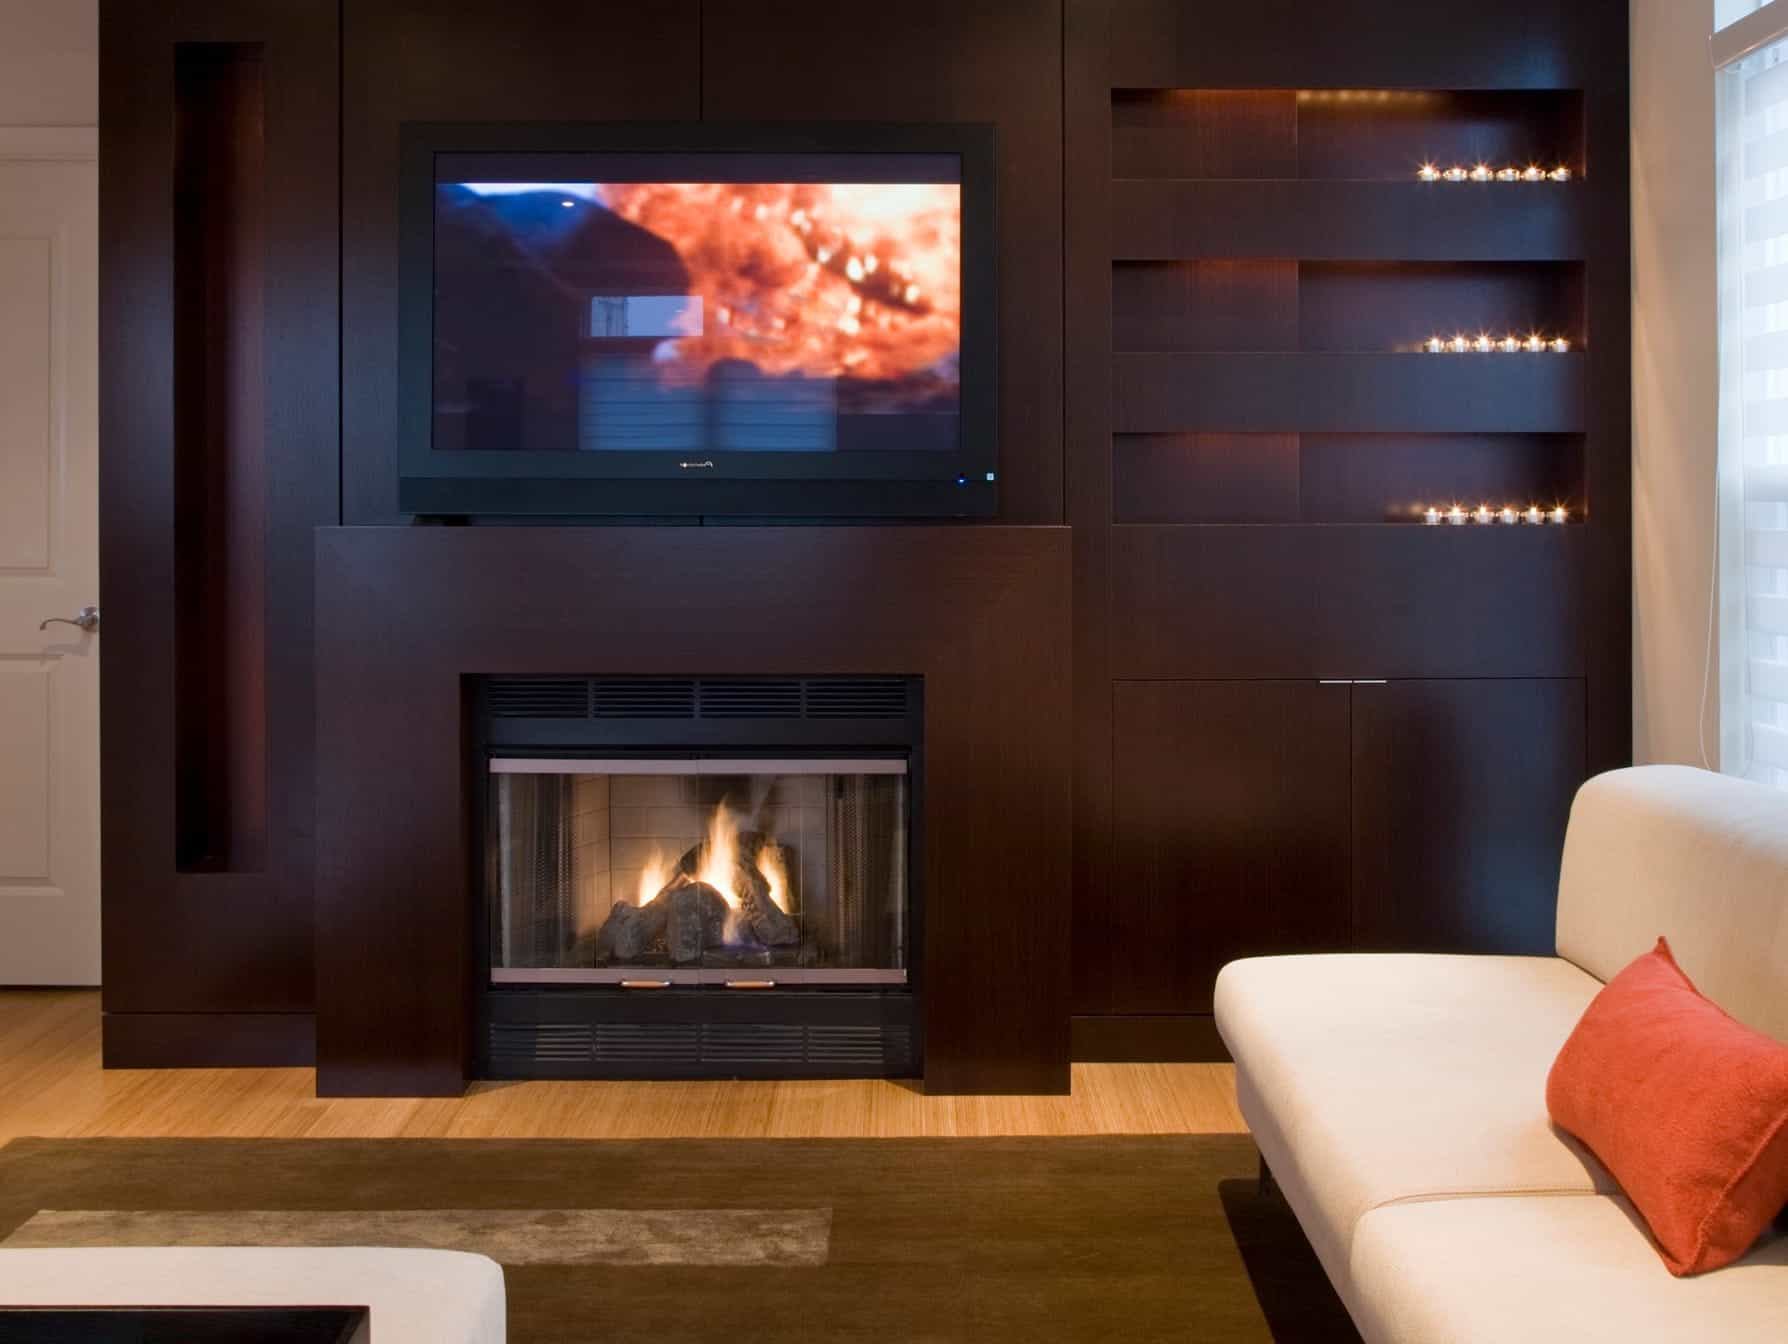 Contemporary Wood Entertainment Center With Fireplace (Image 6 of 21)